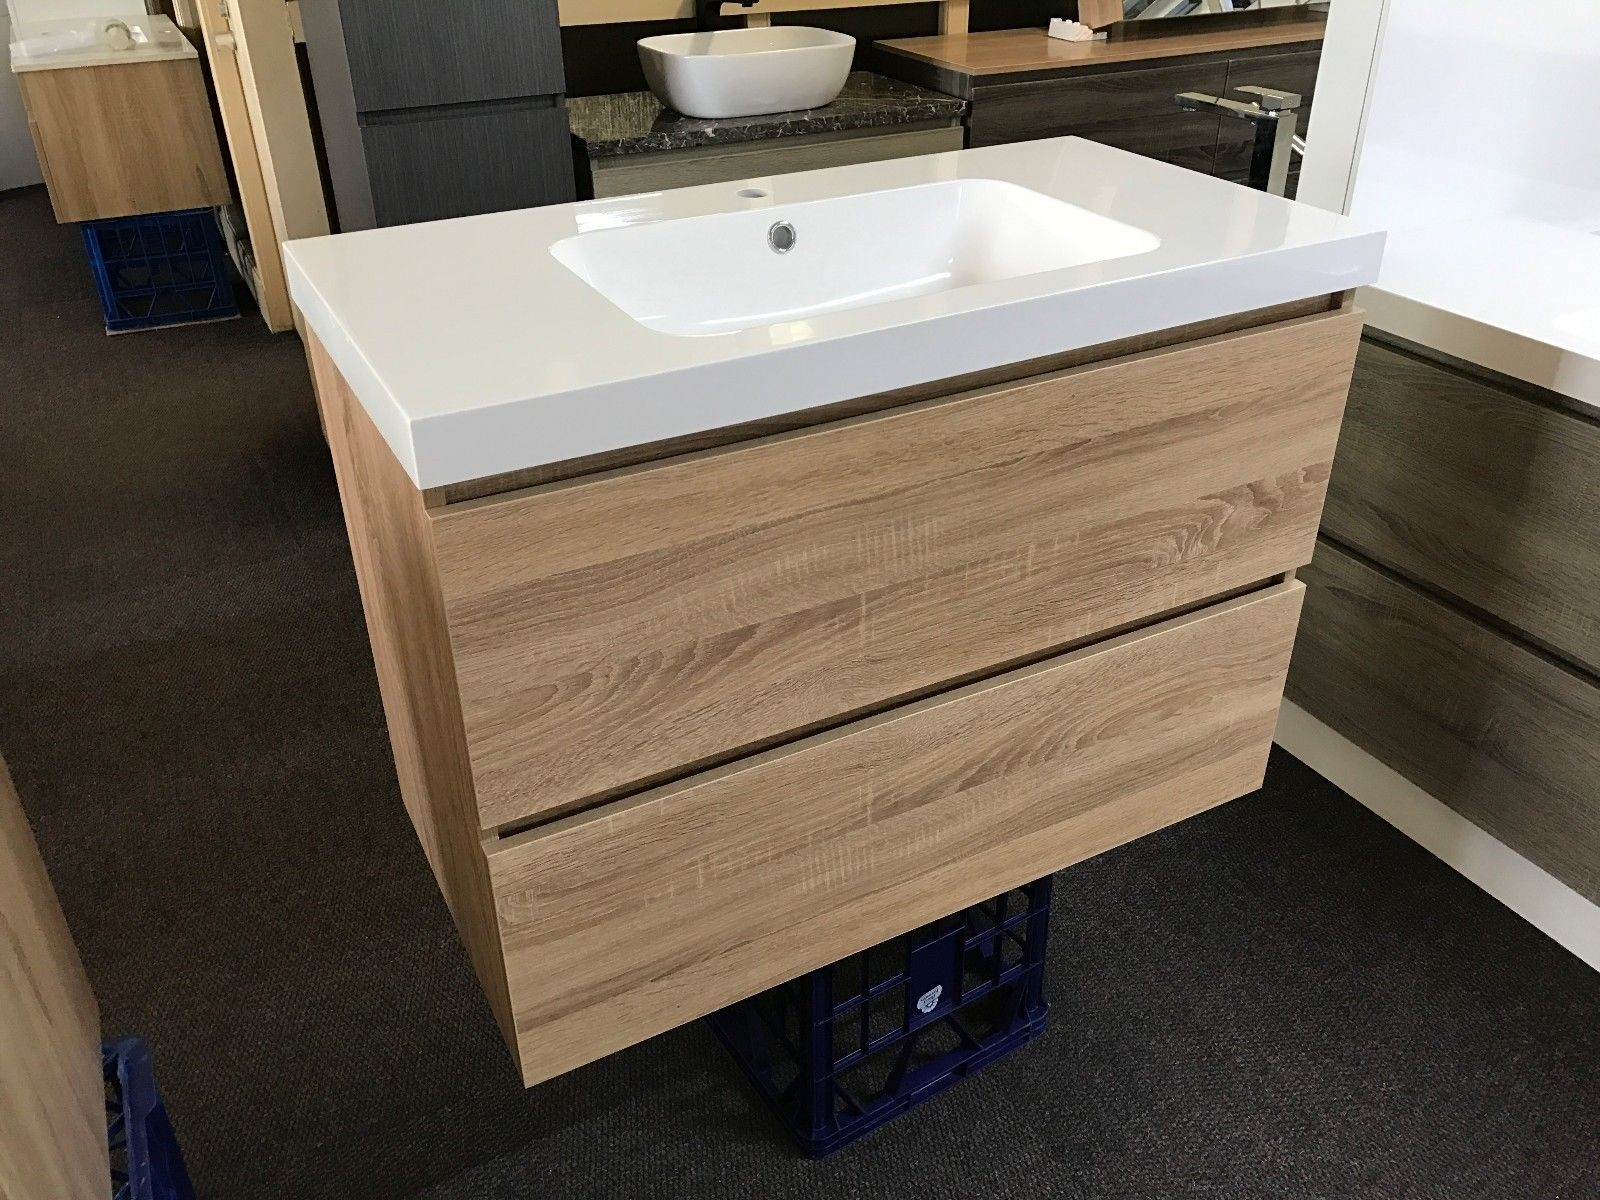 Astra Slimline 900mm White Oak Timber Wood Grain Narrow Bathroom Vanity 400mm Homegear